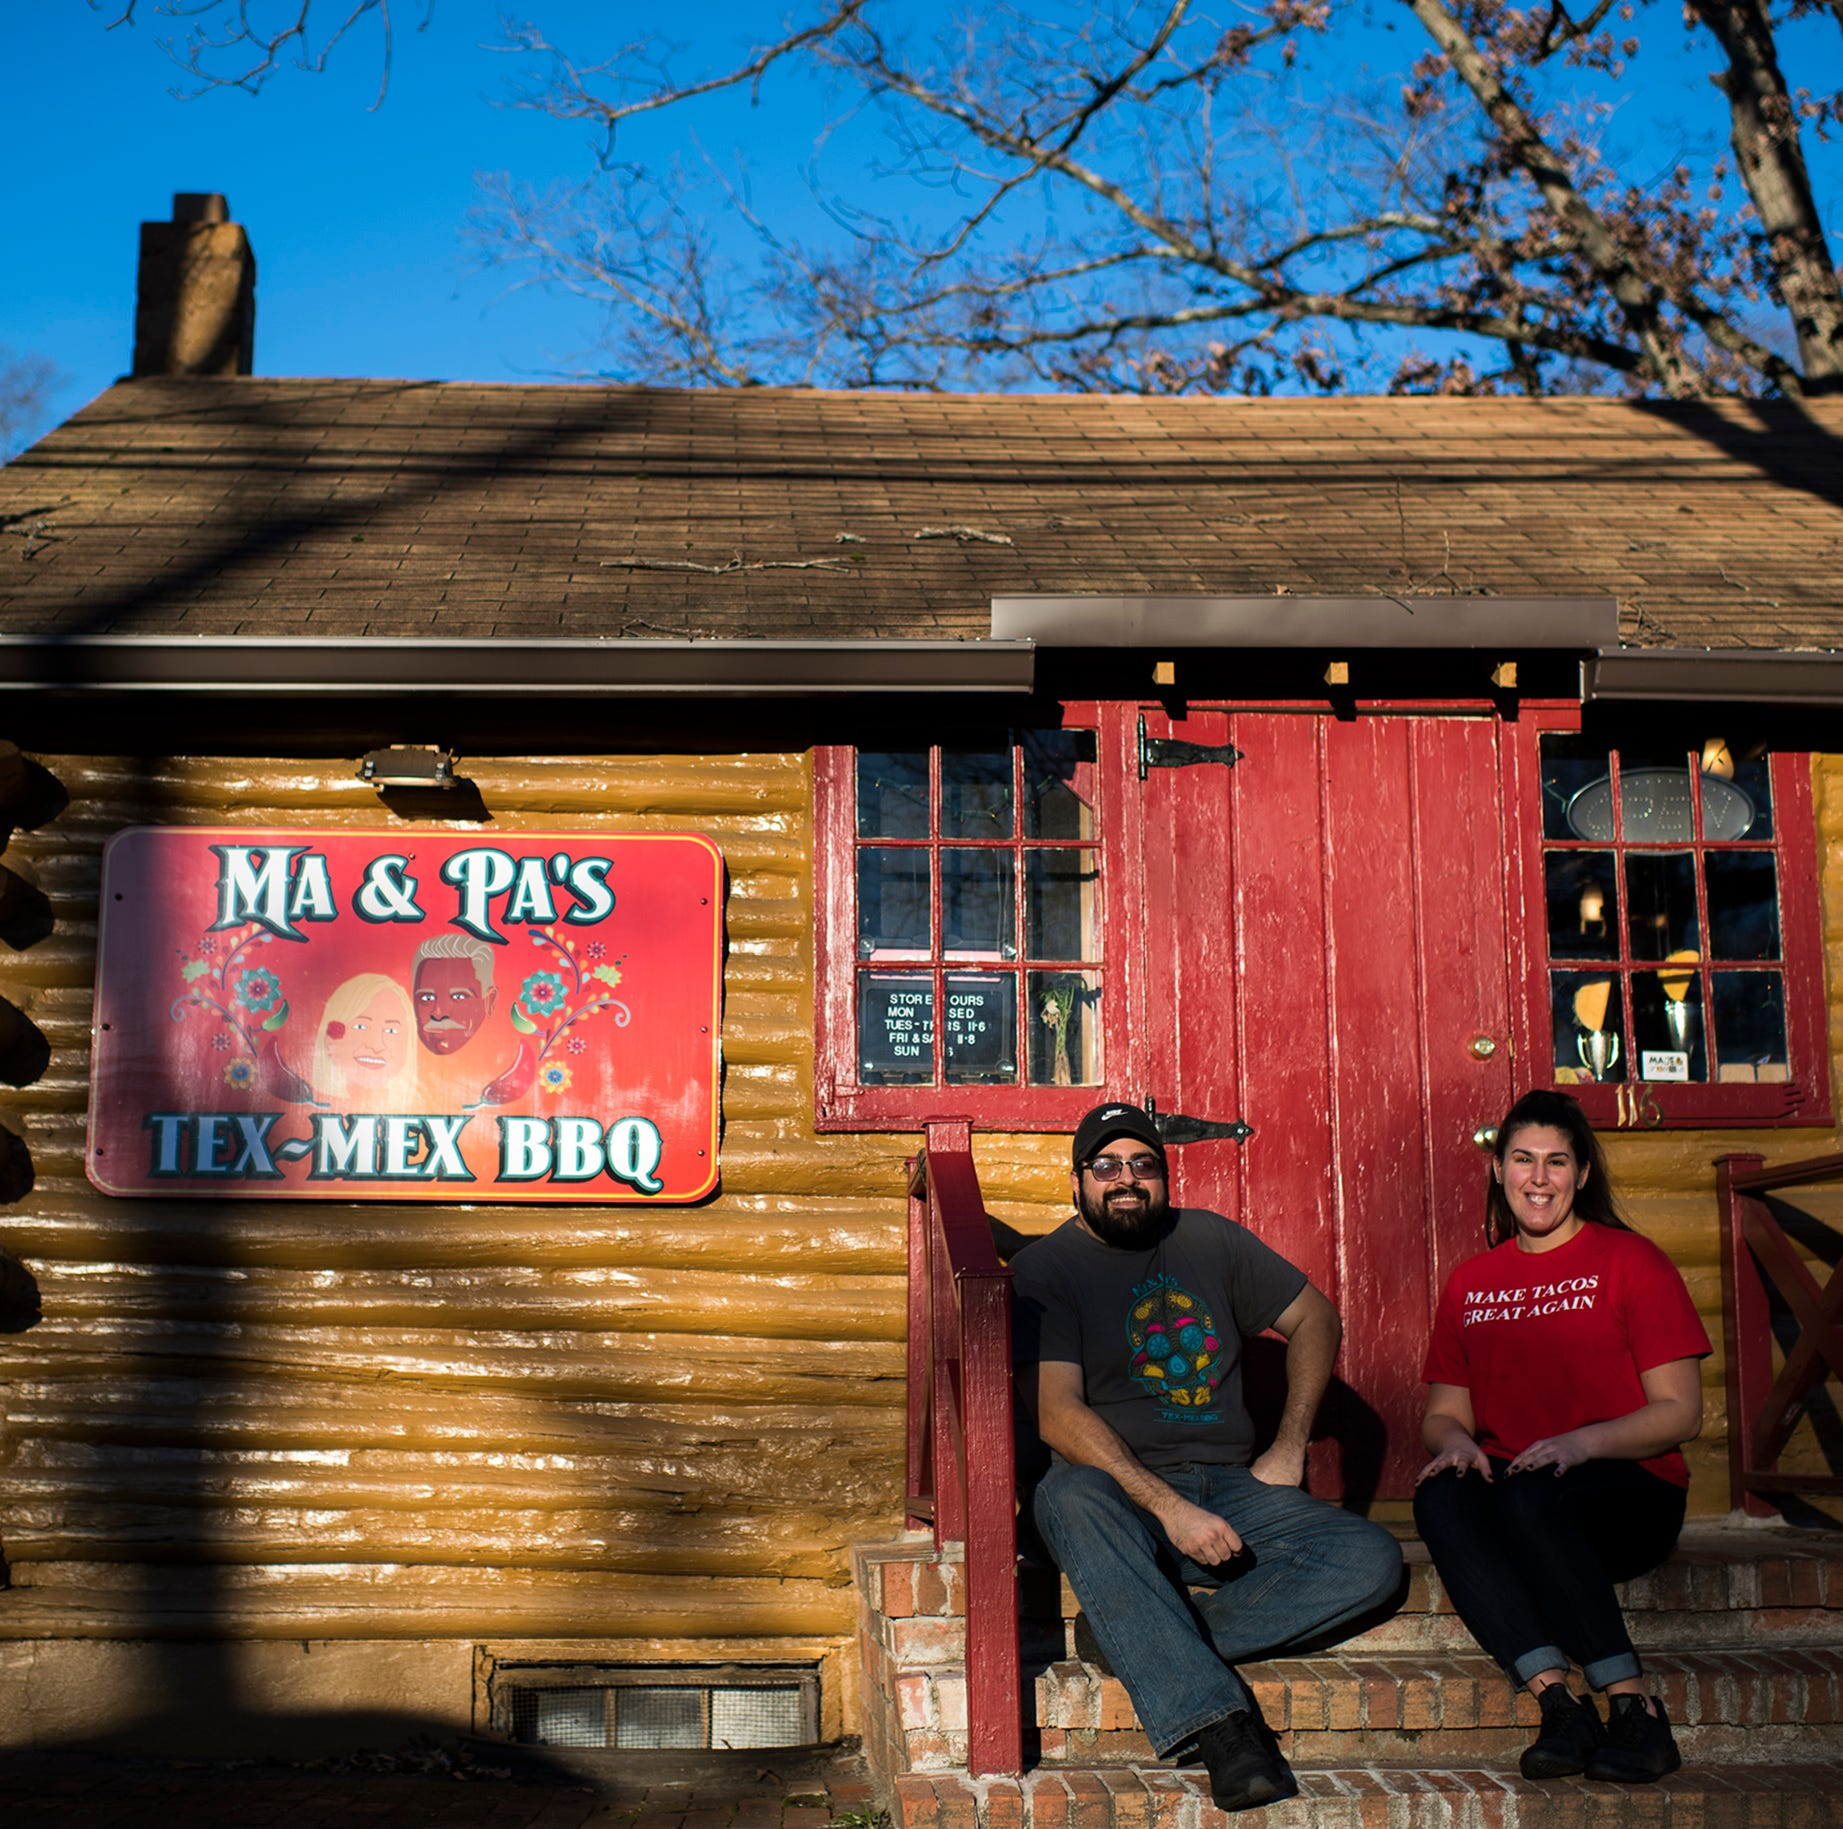 Ma & Pa's Tex-Mex BBQ opens in Rancocas Woods in Mt. Laurel